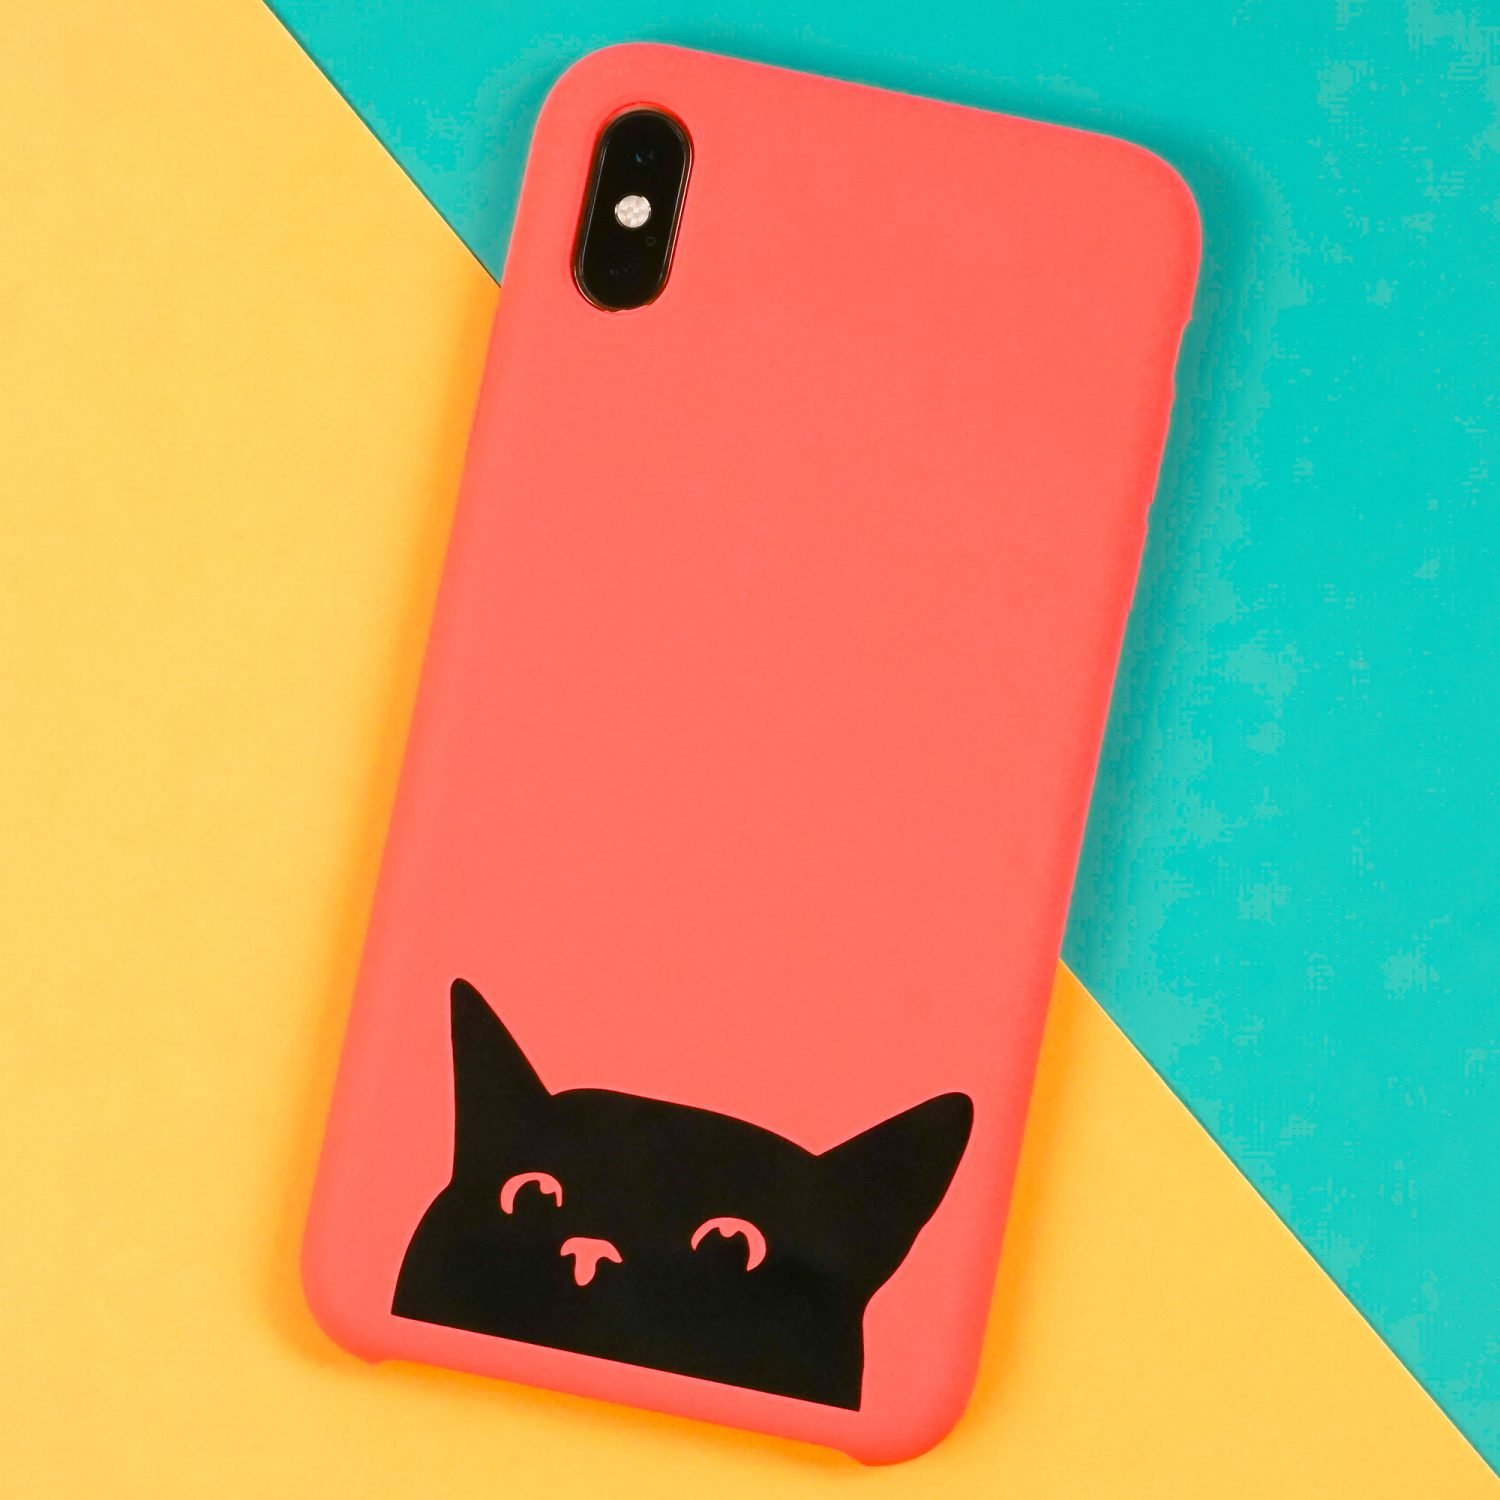 Cat phone case made with a Cricut on a yellow and teal background